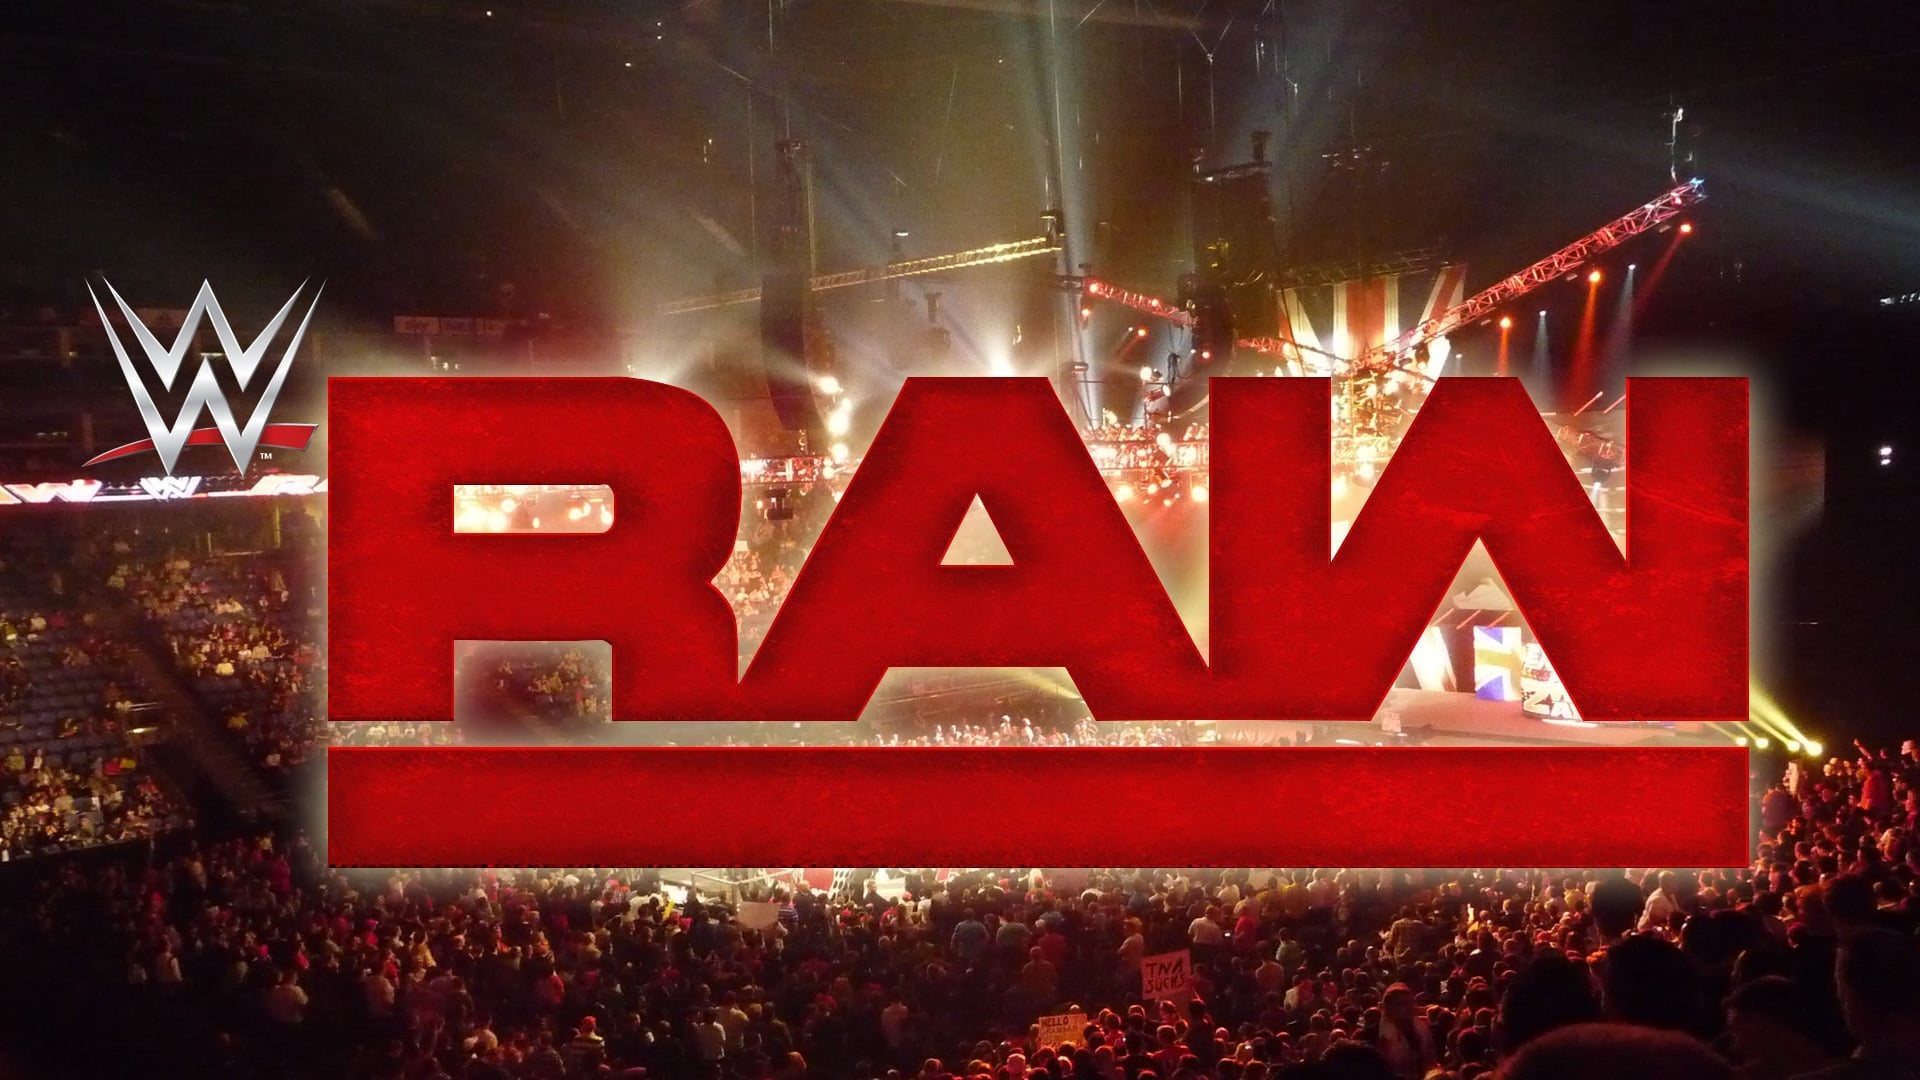 WWE Raw - Season 19 Episode 45 : Face the Truth